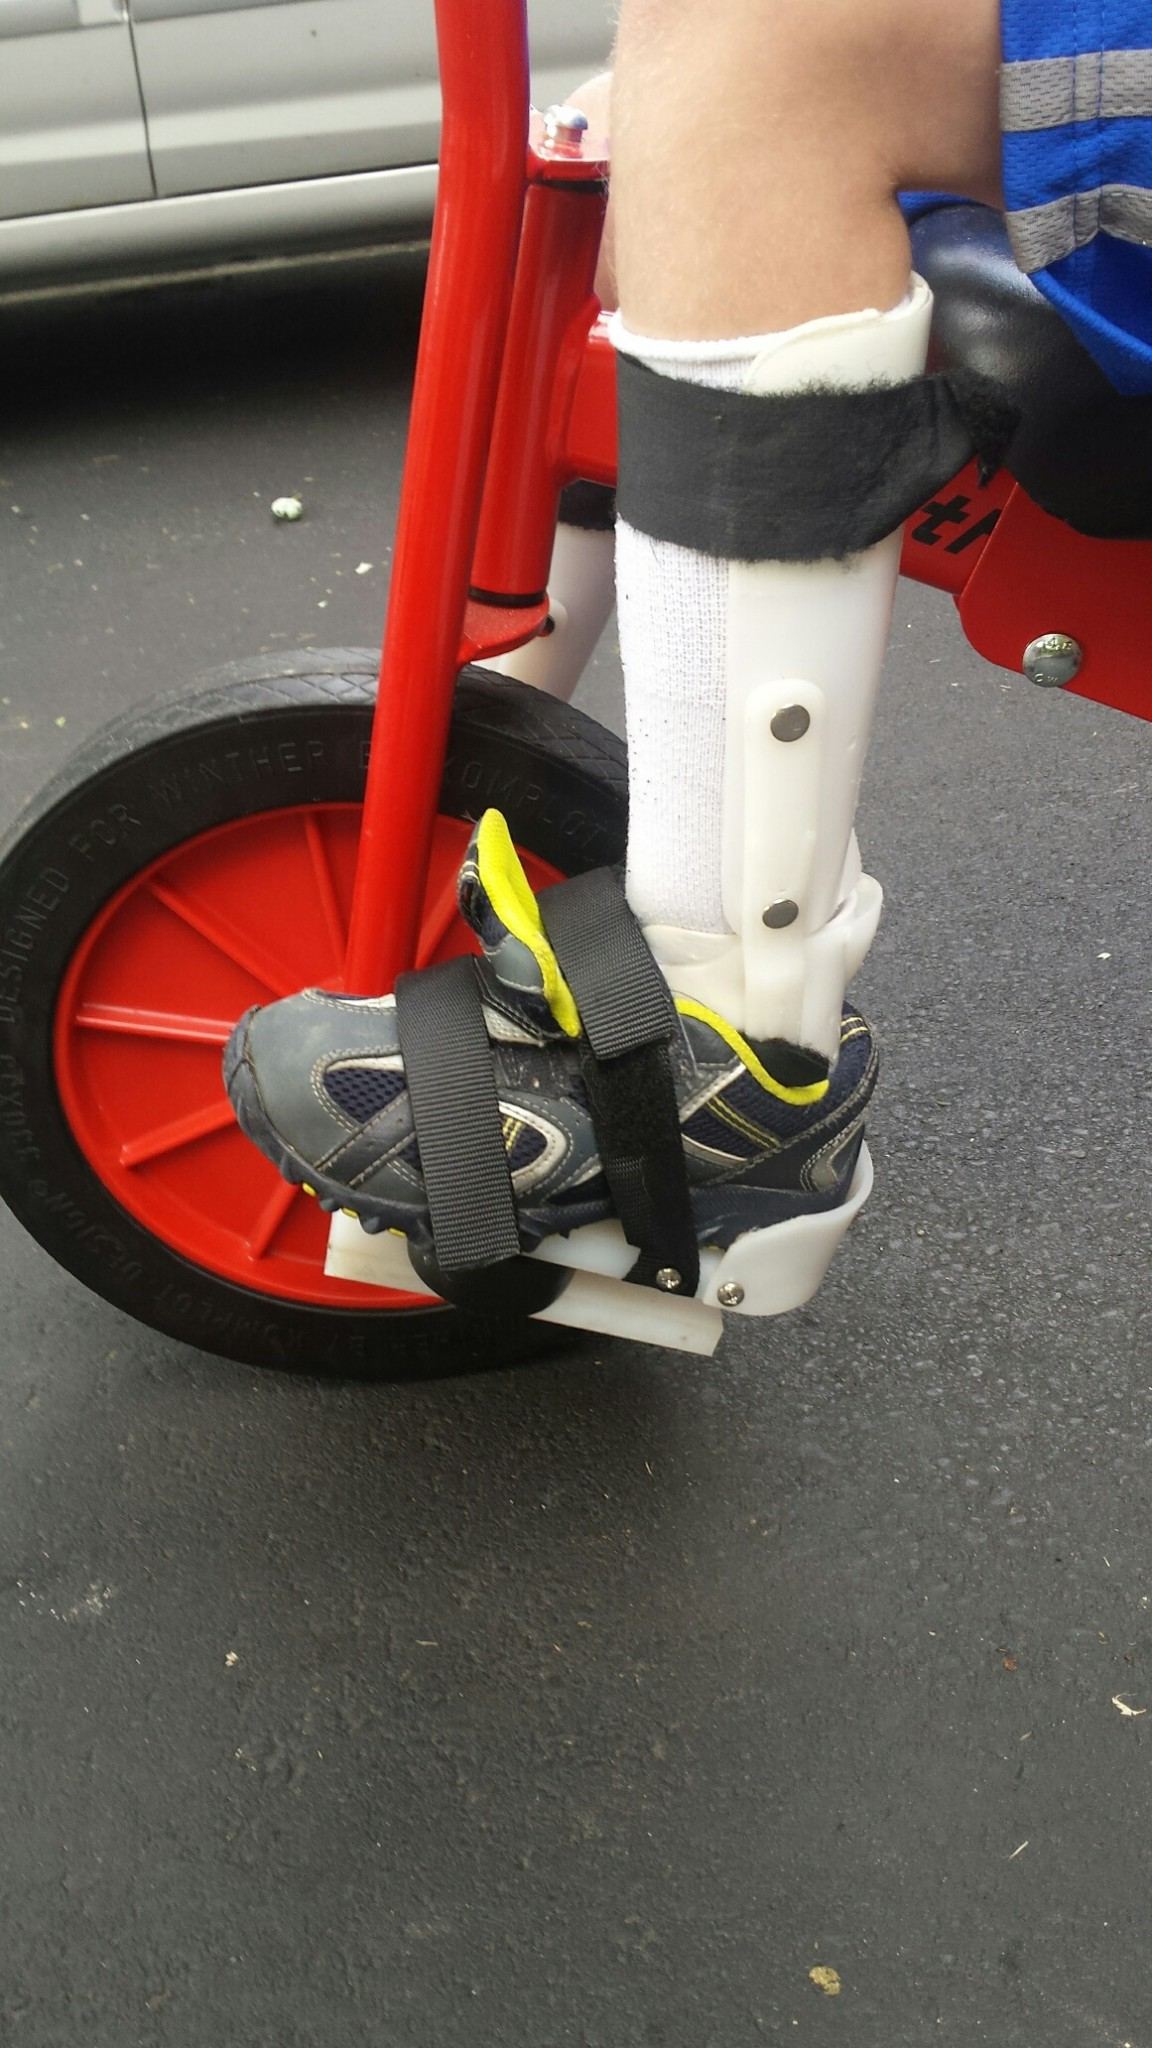 Special needs adapted front pedals of Winther tricycle